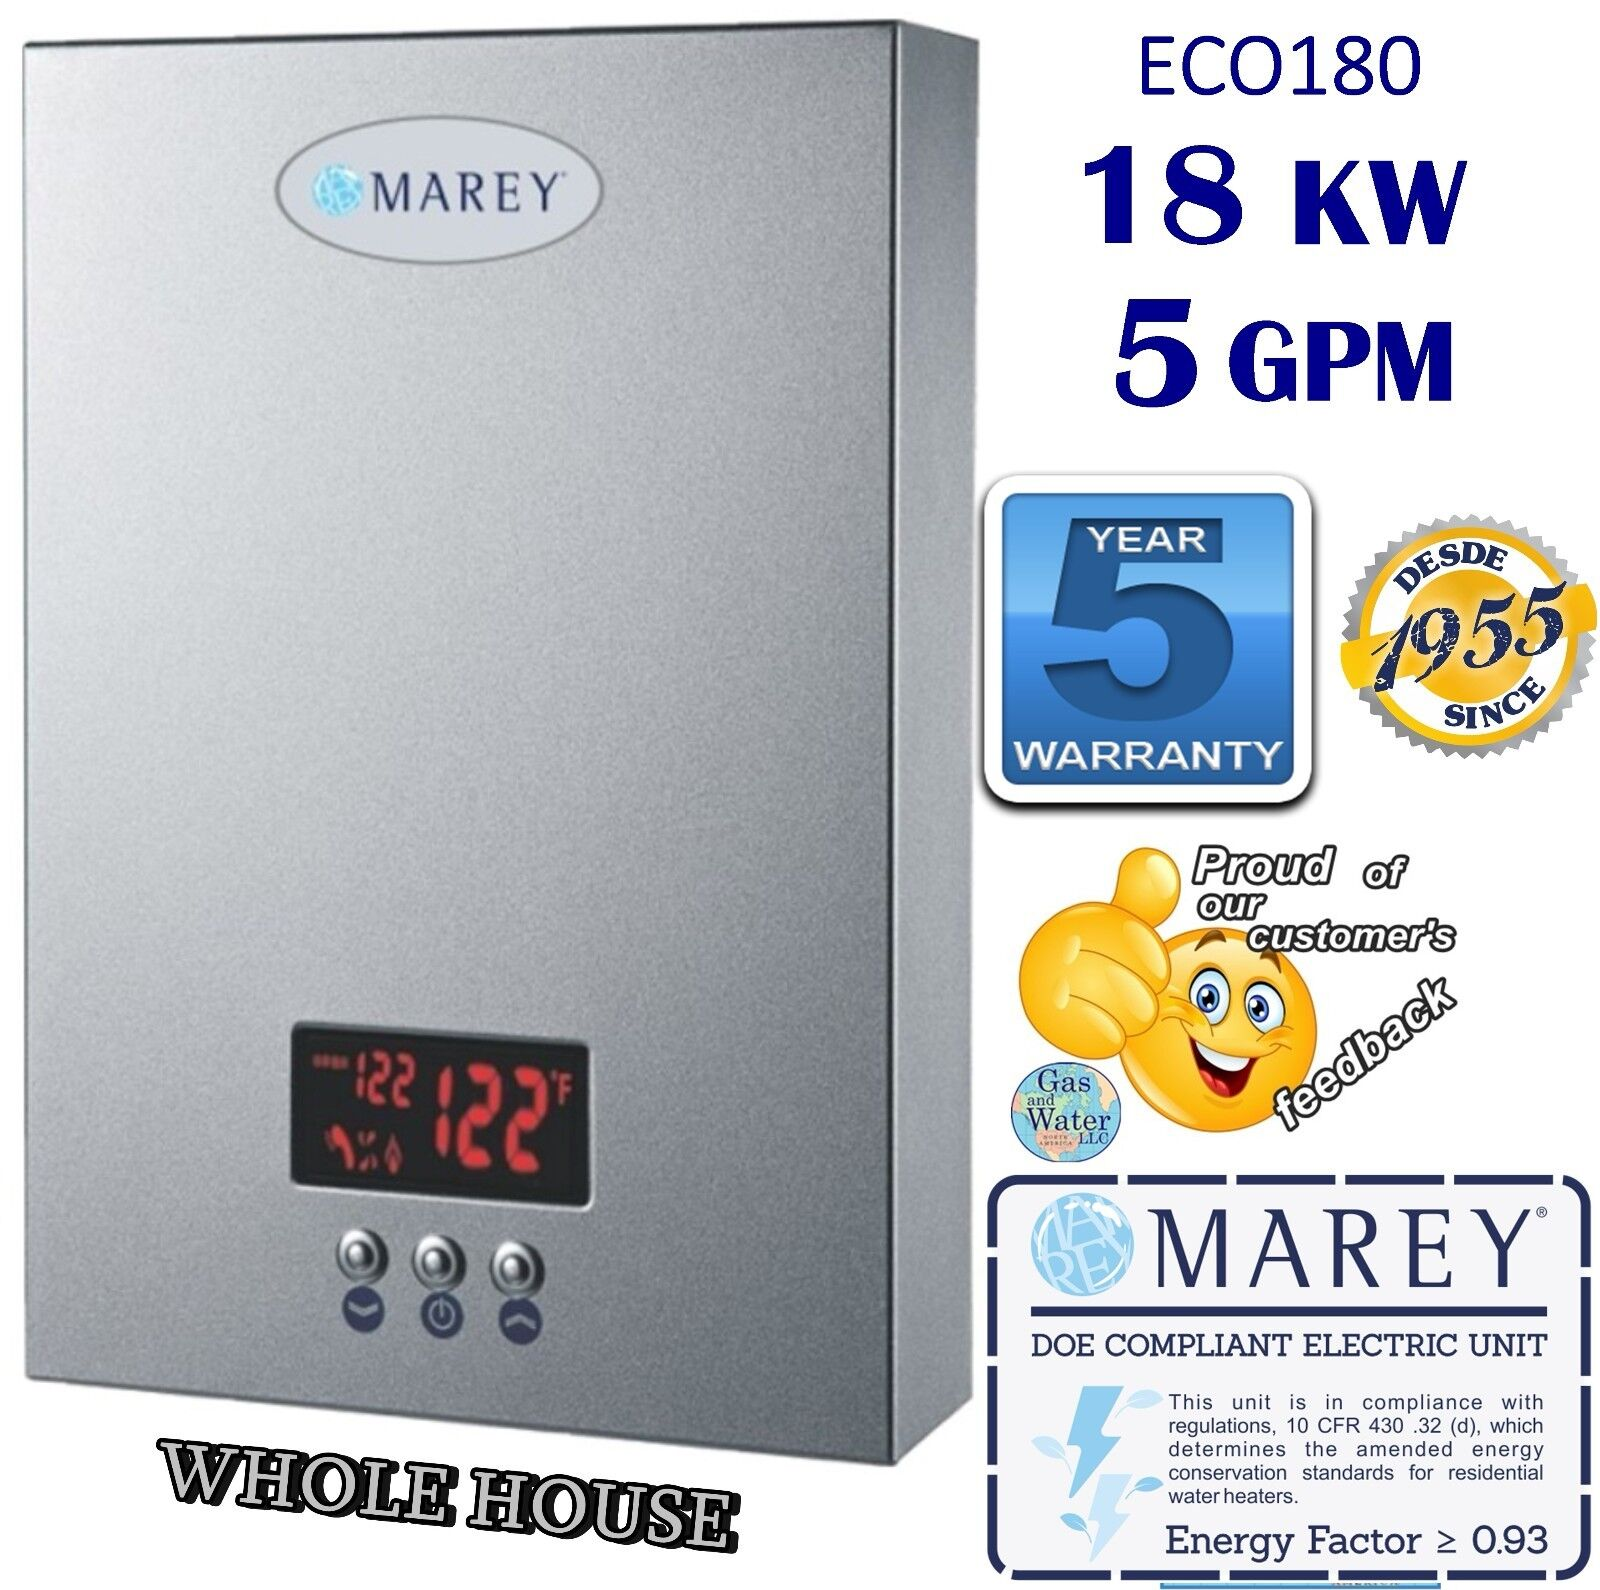 Marey 5 GPM 220V Electric Tankless Instant Water Heater 18KW